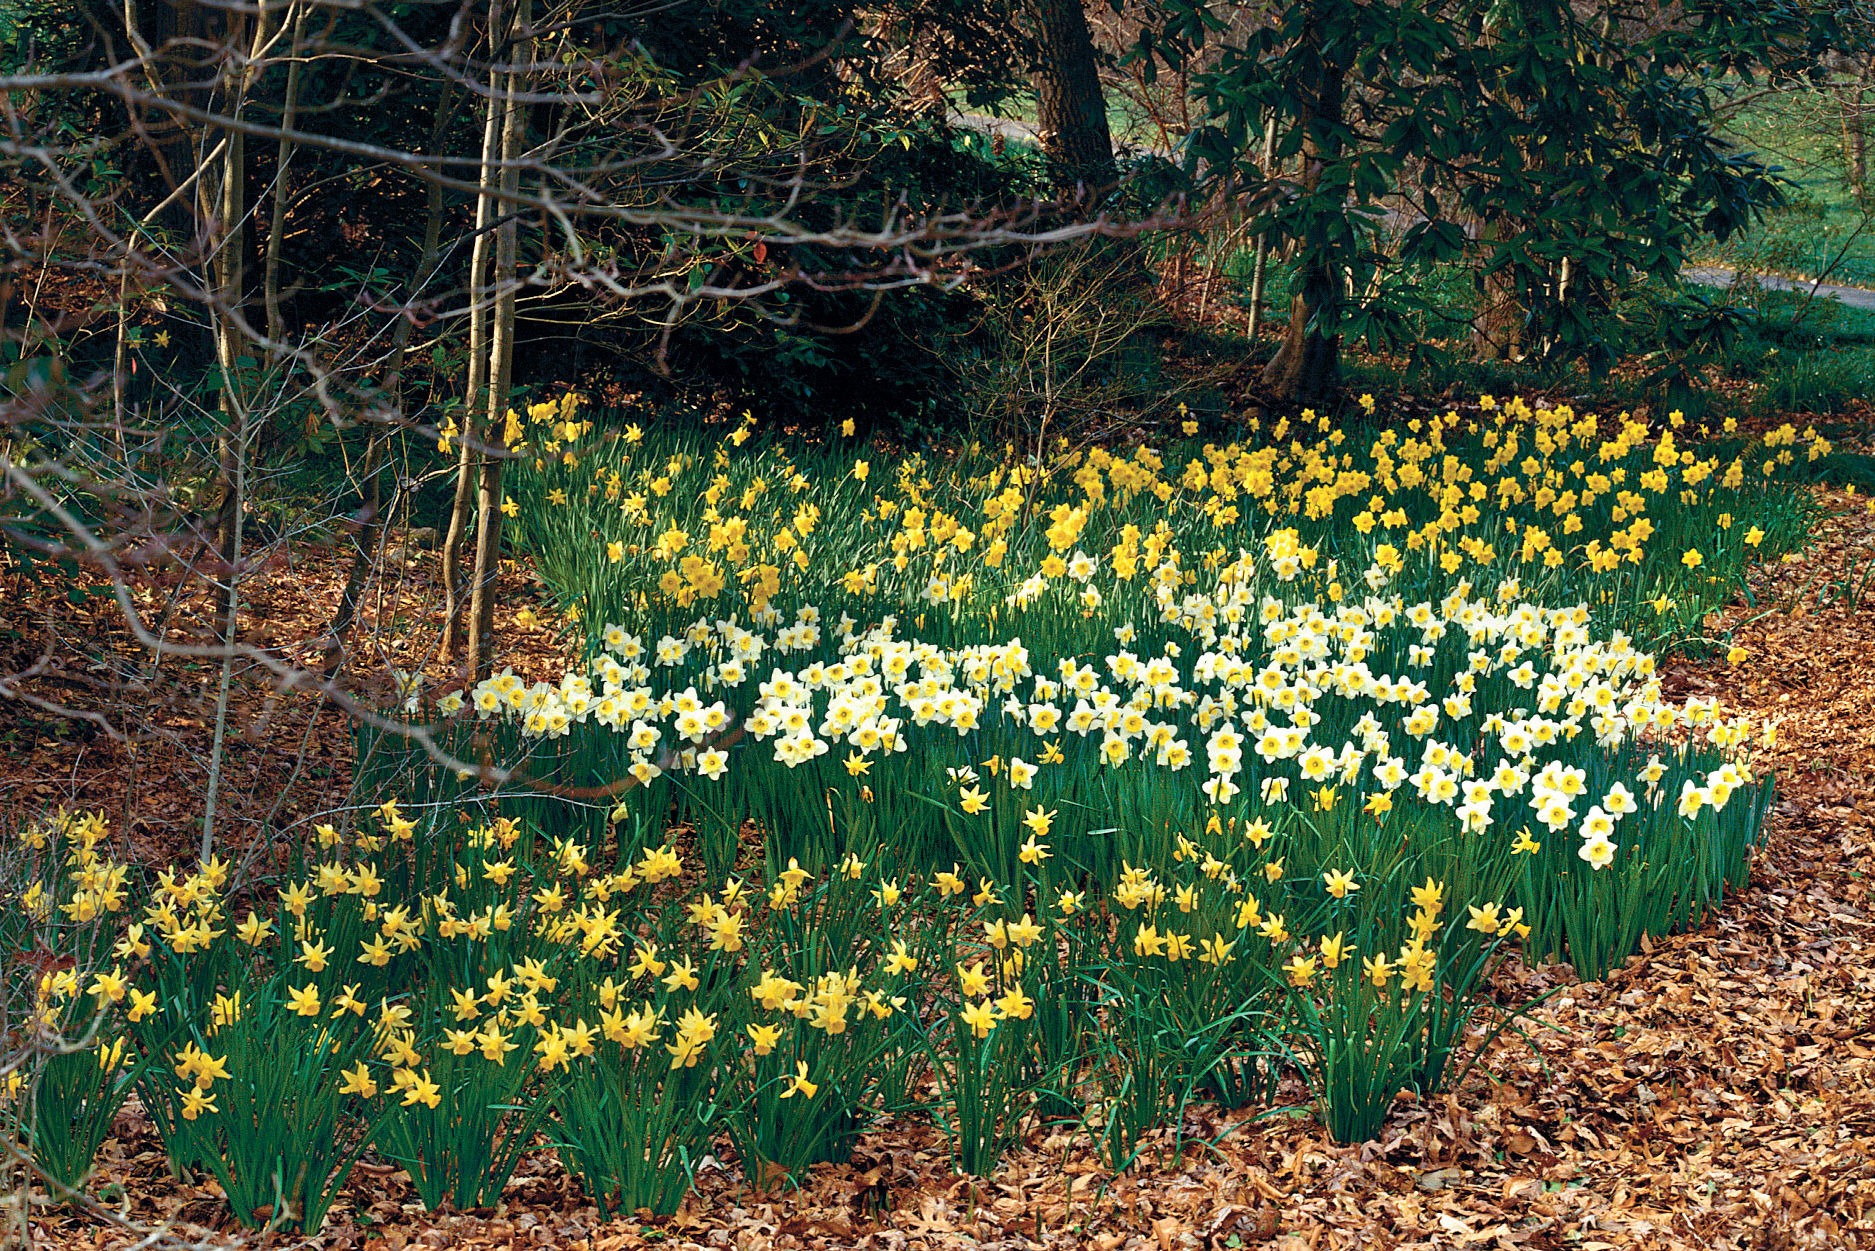 Daffodils: How to Plant 'Em Like Mother Nature